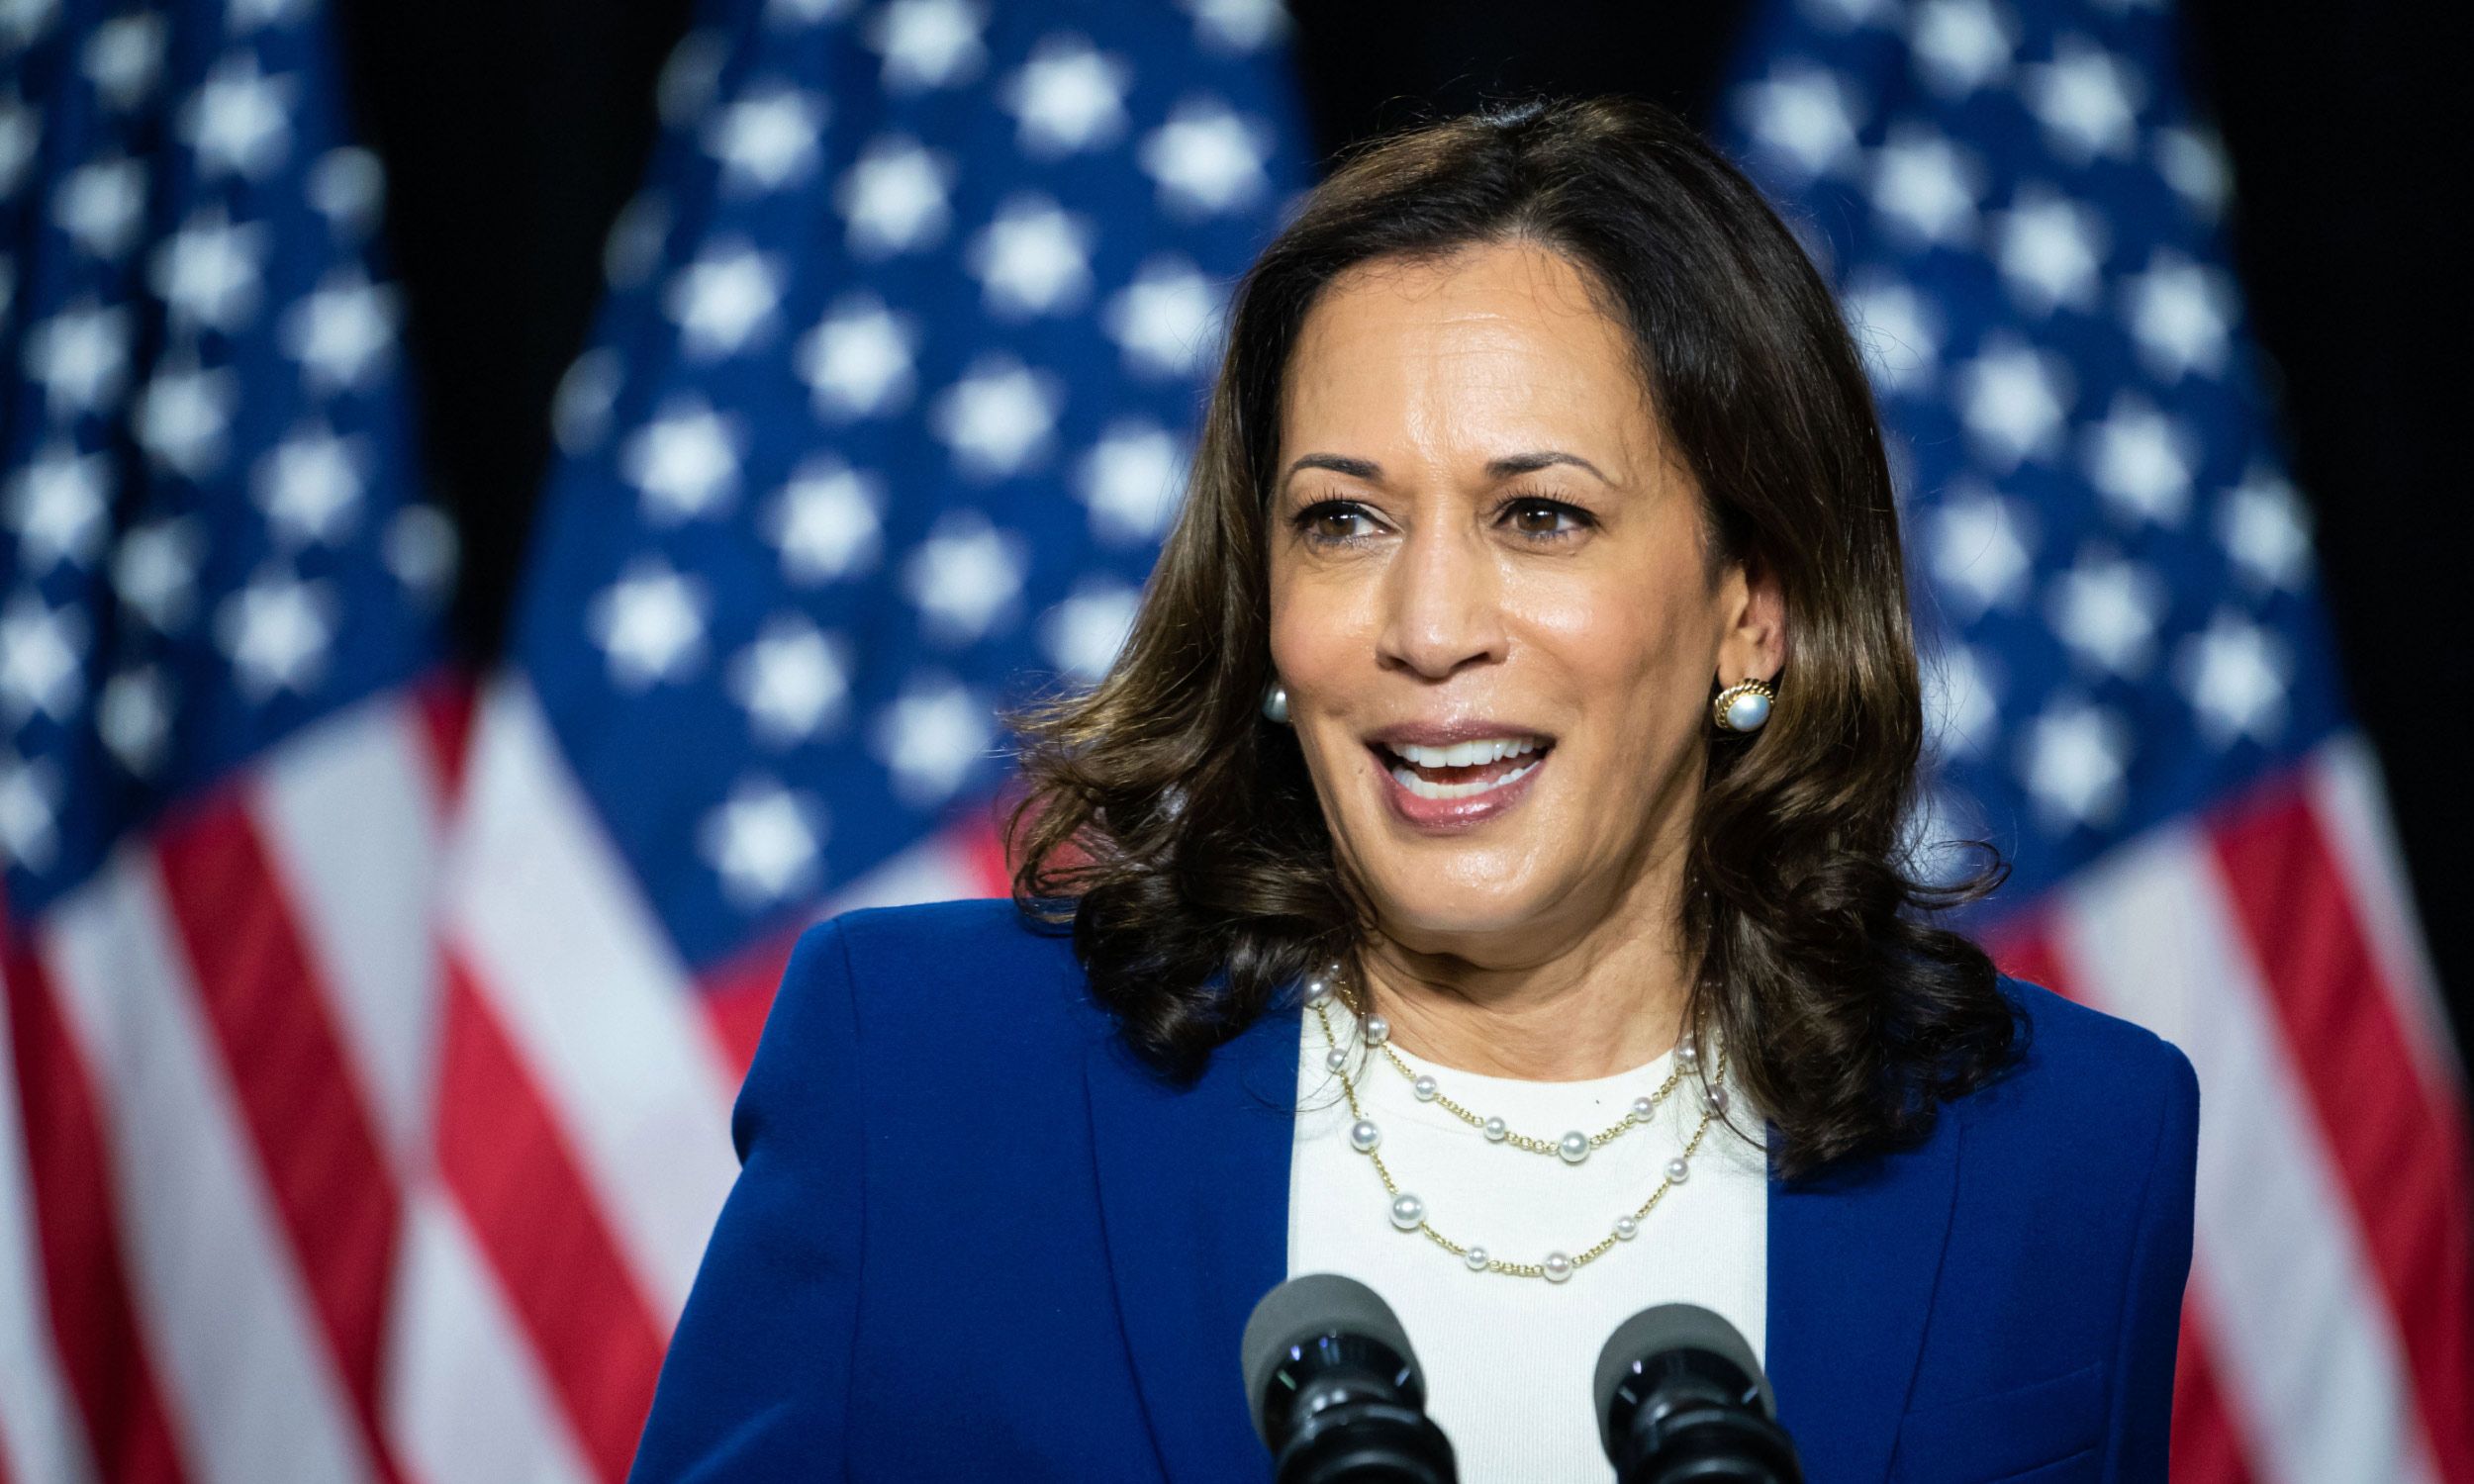 Kamala Harris: The Vice President